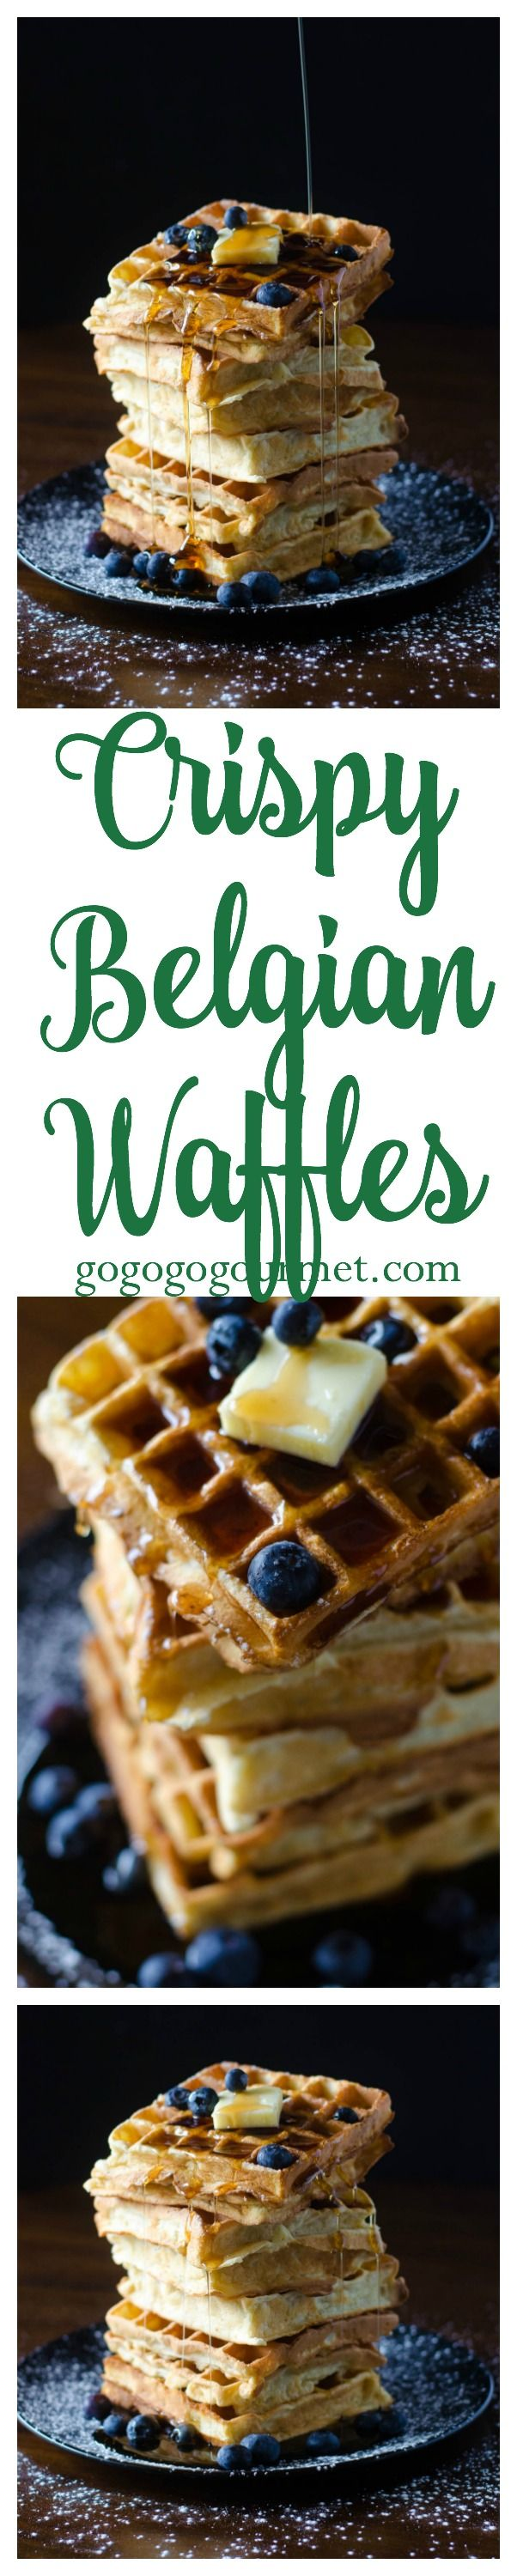 These waffles are crispy on the outside, soft and fluffy on the inside- and the perfect way to start your day! Crispy Belgian Waffles | Go Go Go Gourmet @gogogogourmet